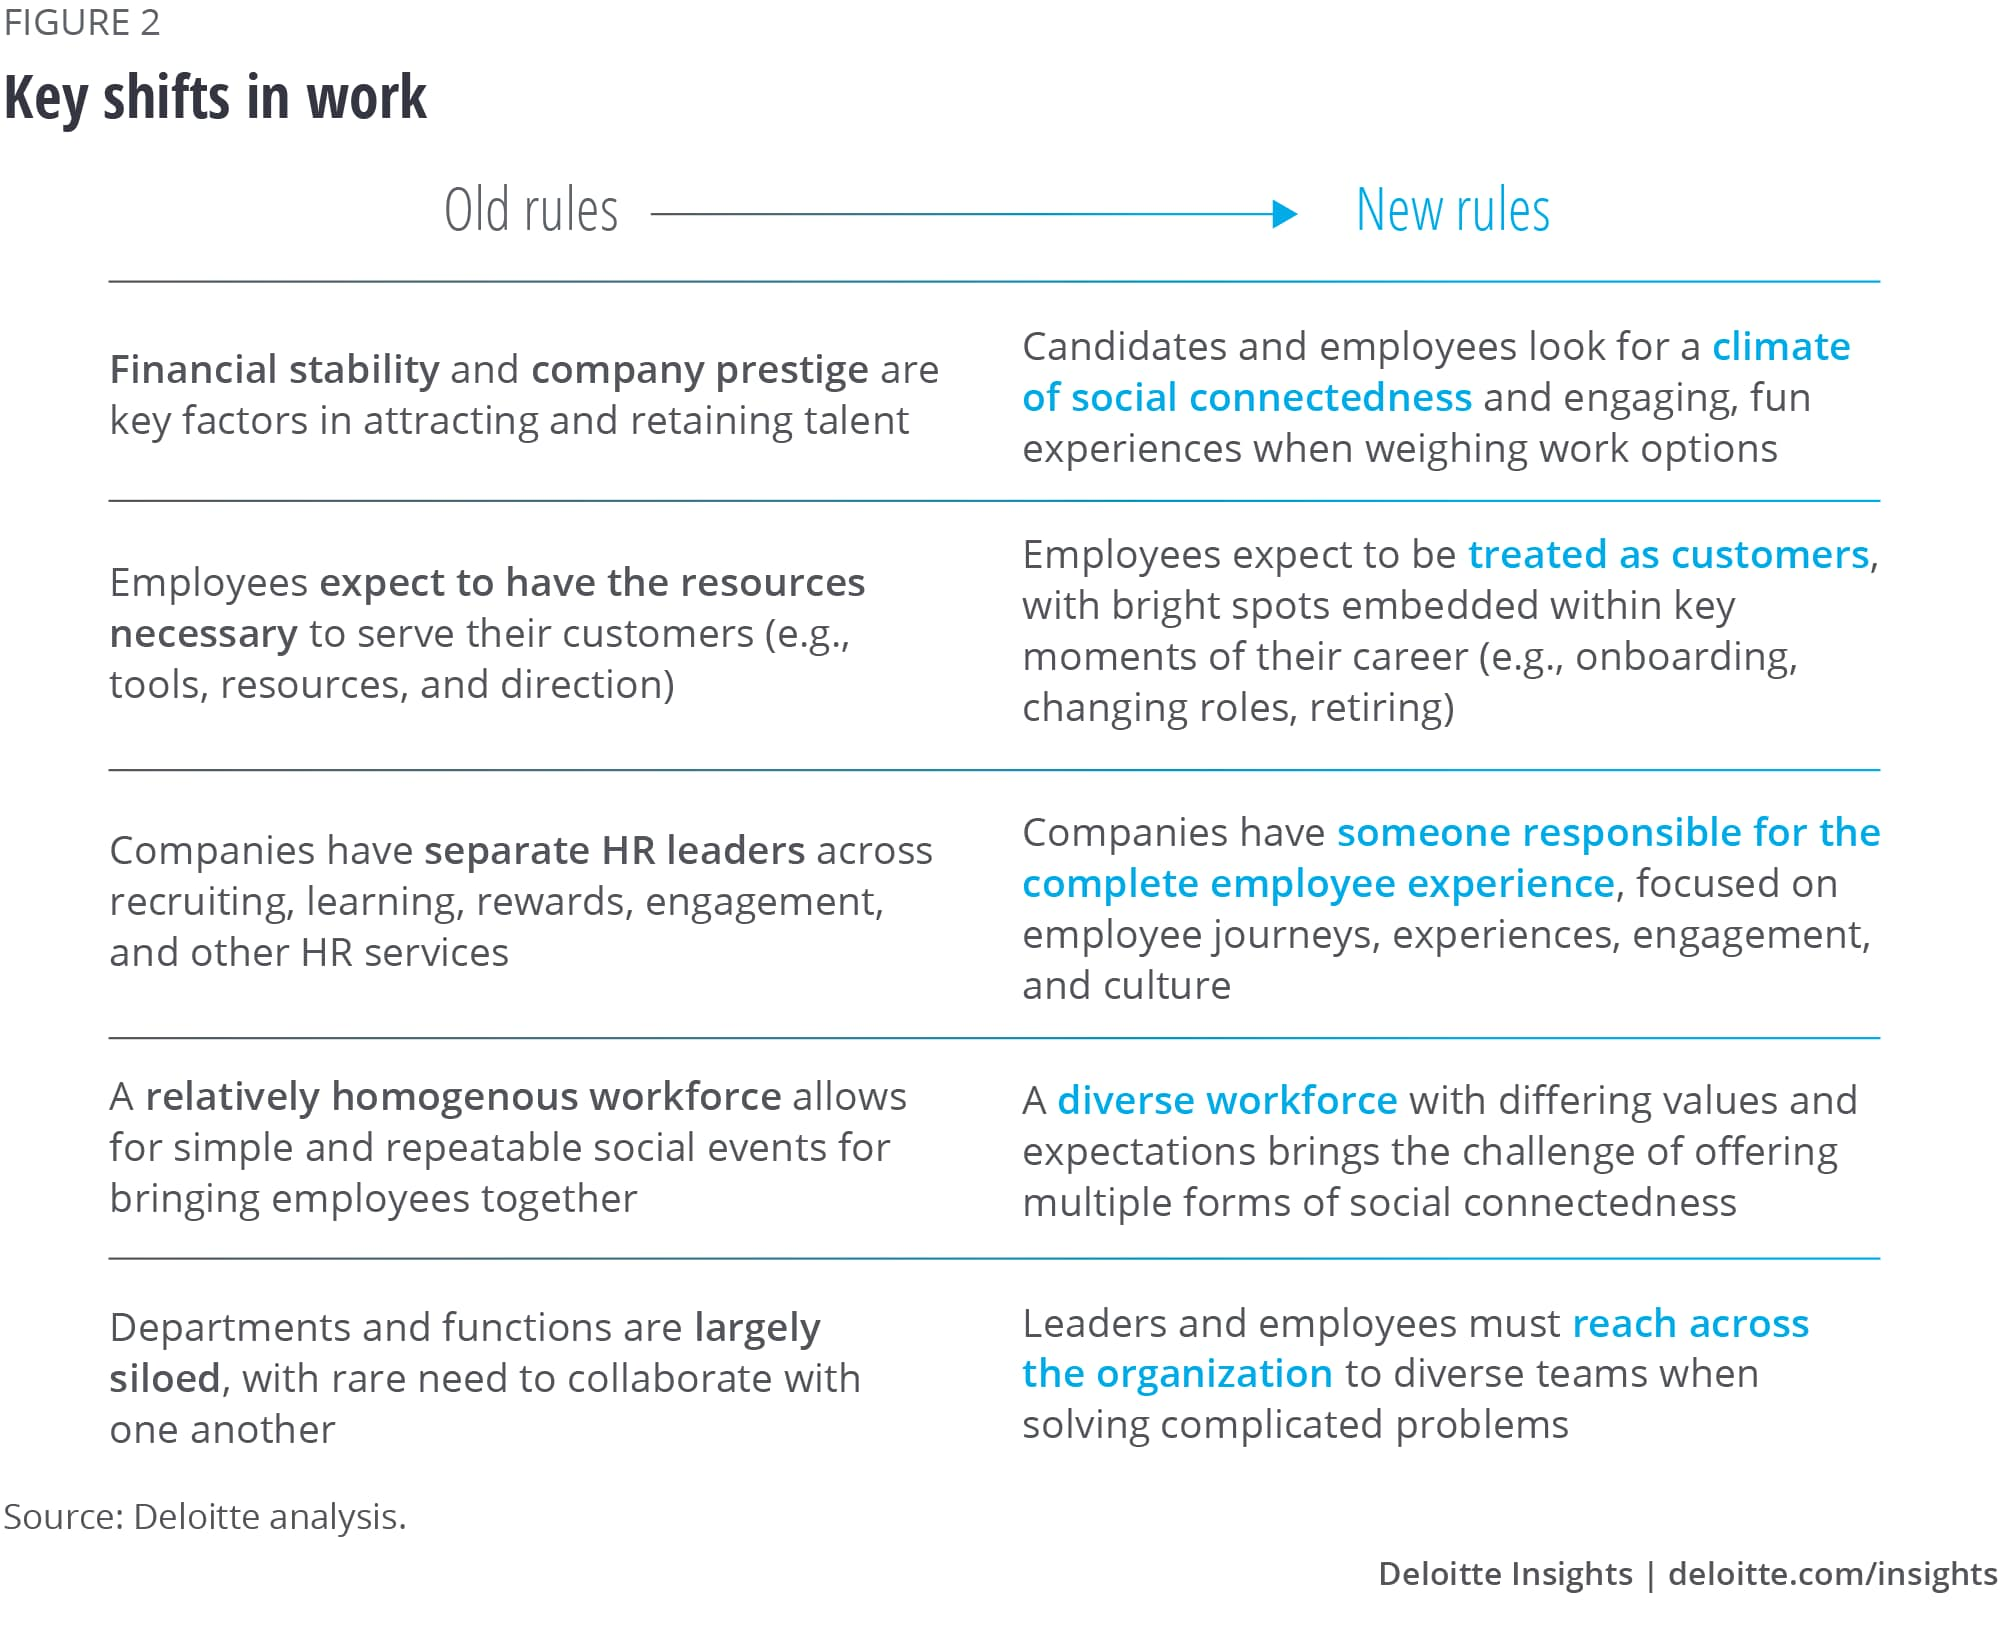 Key shifts in work